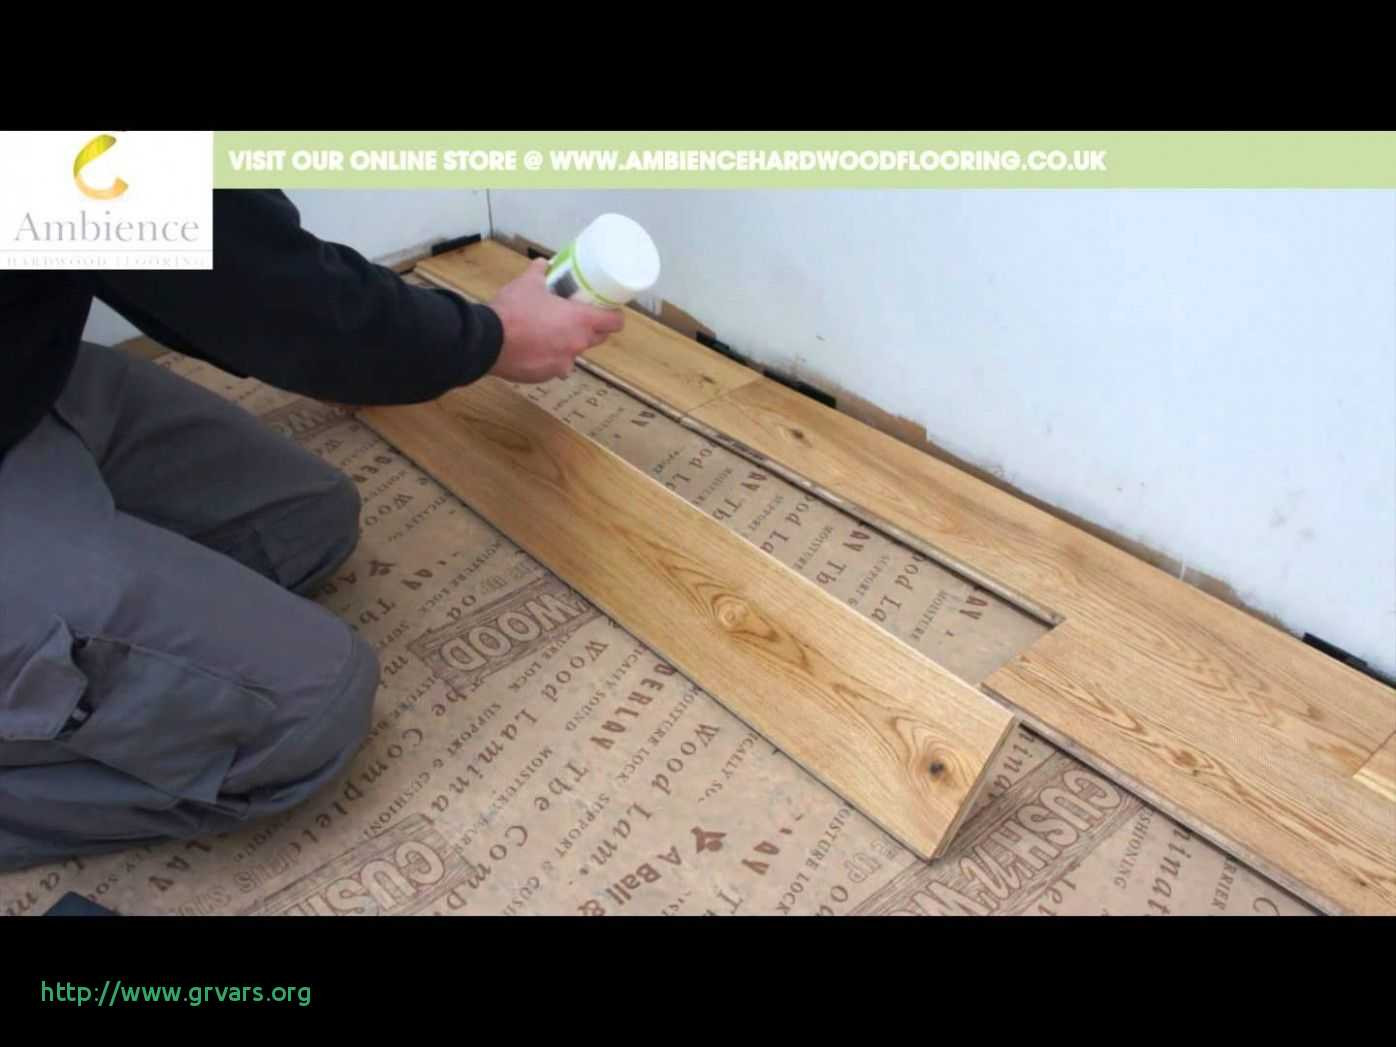 Installing Engineered Hardwood Flooring On Concrete Of Best Way to Install Engineered Wood Flooring Beau How to Install In Best Way to Install Engineered Wood Flooring Beau How to Install Engineered tongue How to Install Engineered Wood